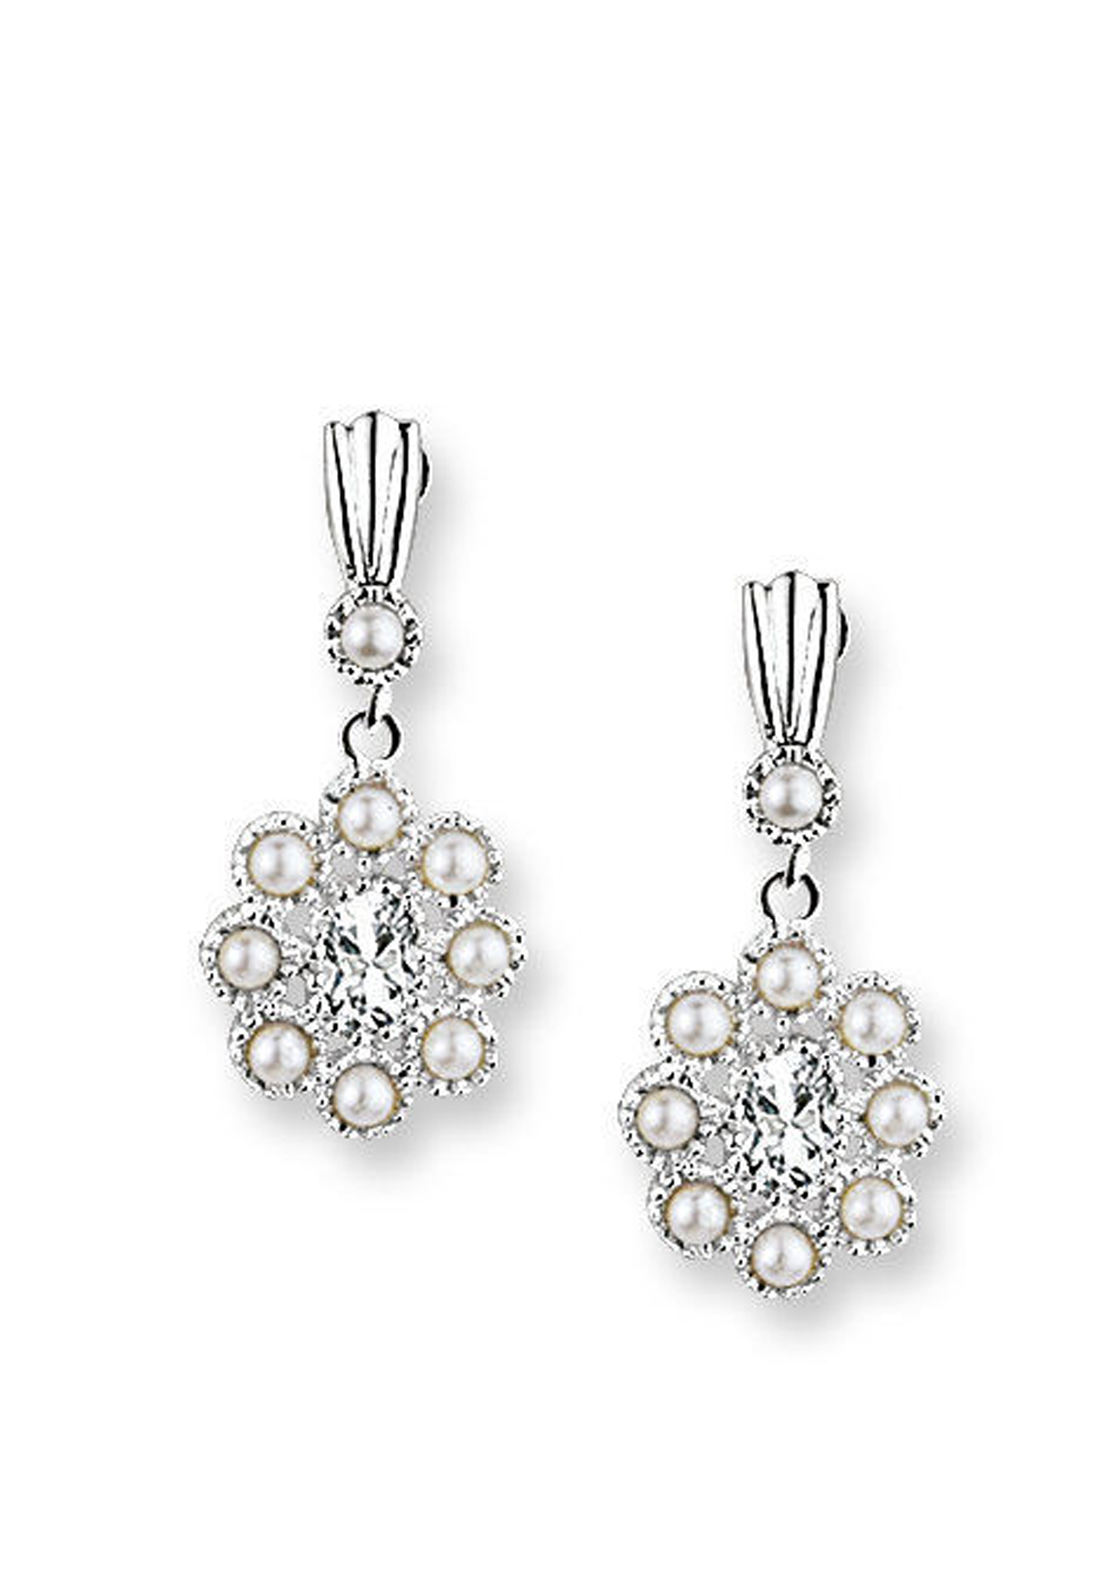 Newbridge Princess Grace Collection Floral Earrings